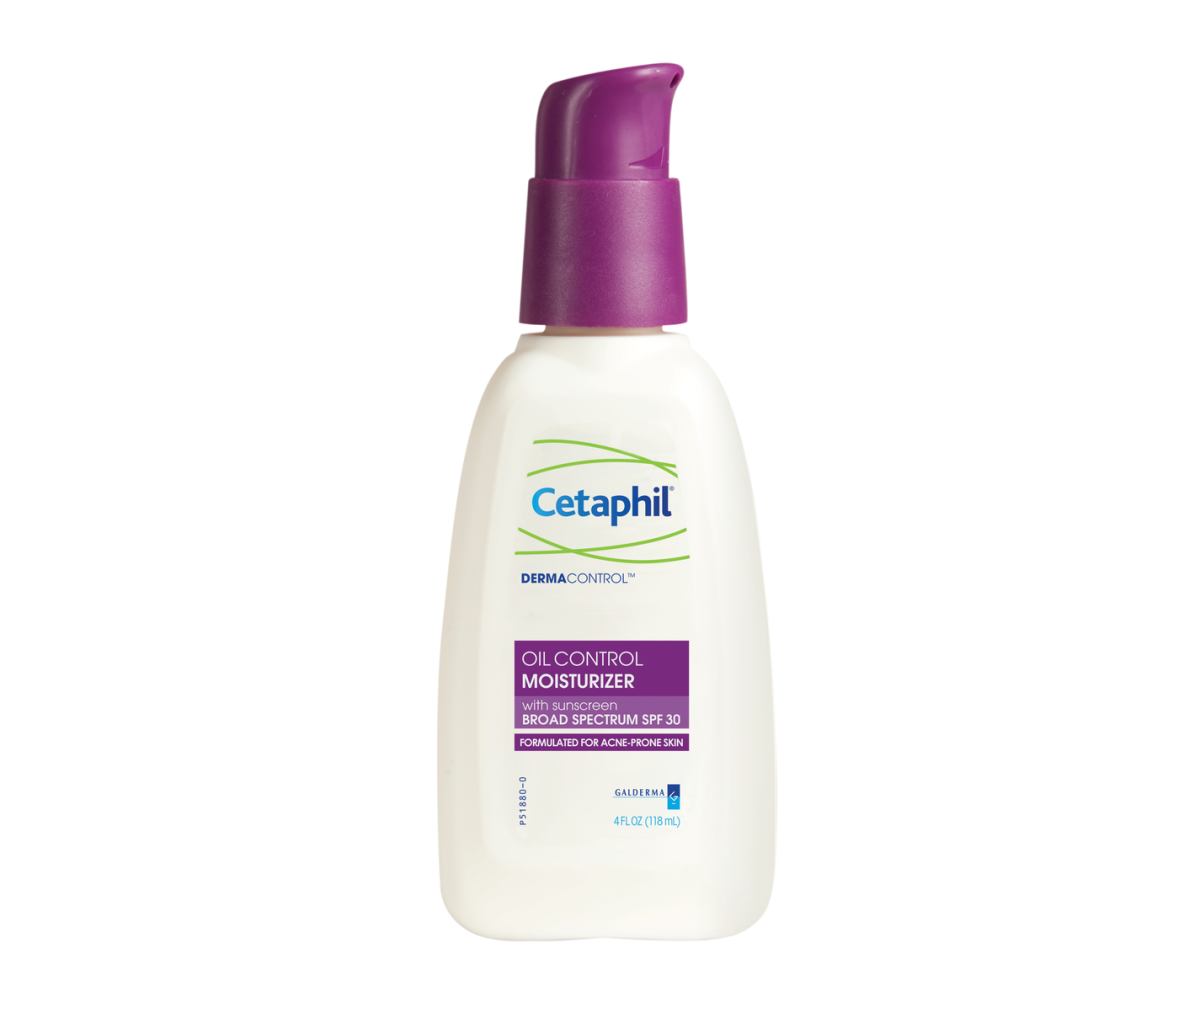 This stuff rocks. Cetaphil DermaControl Oil Control Moisturizer SPF 30, $19, available at Ulta